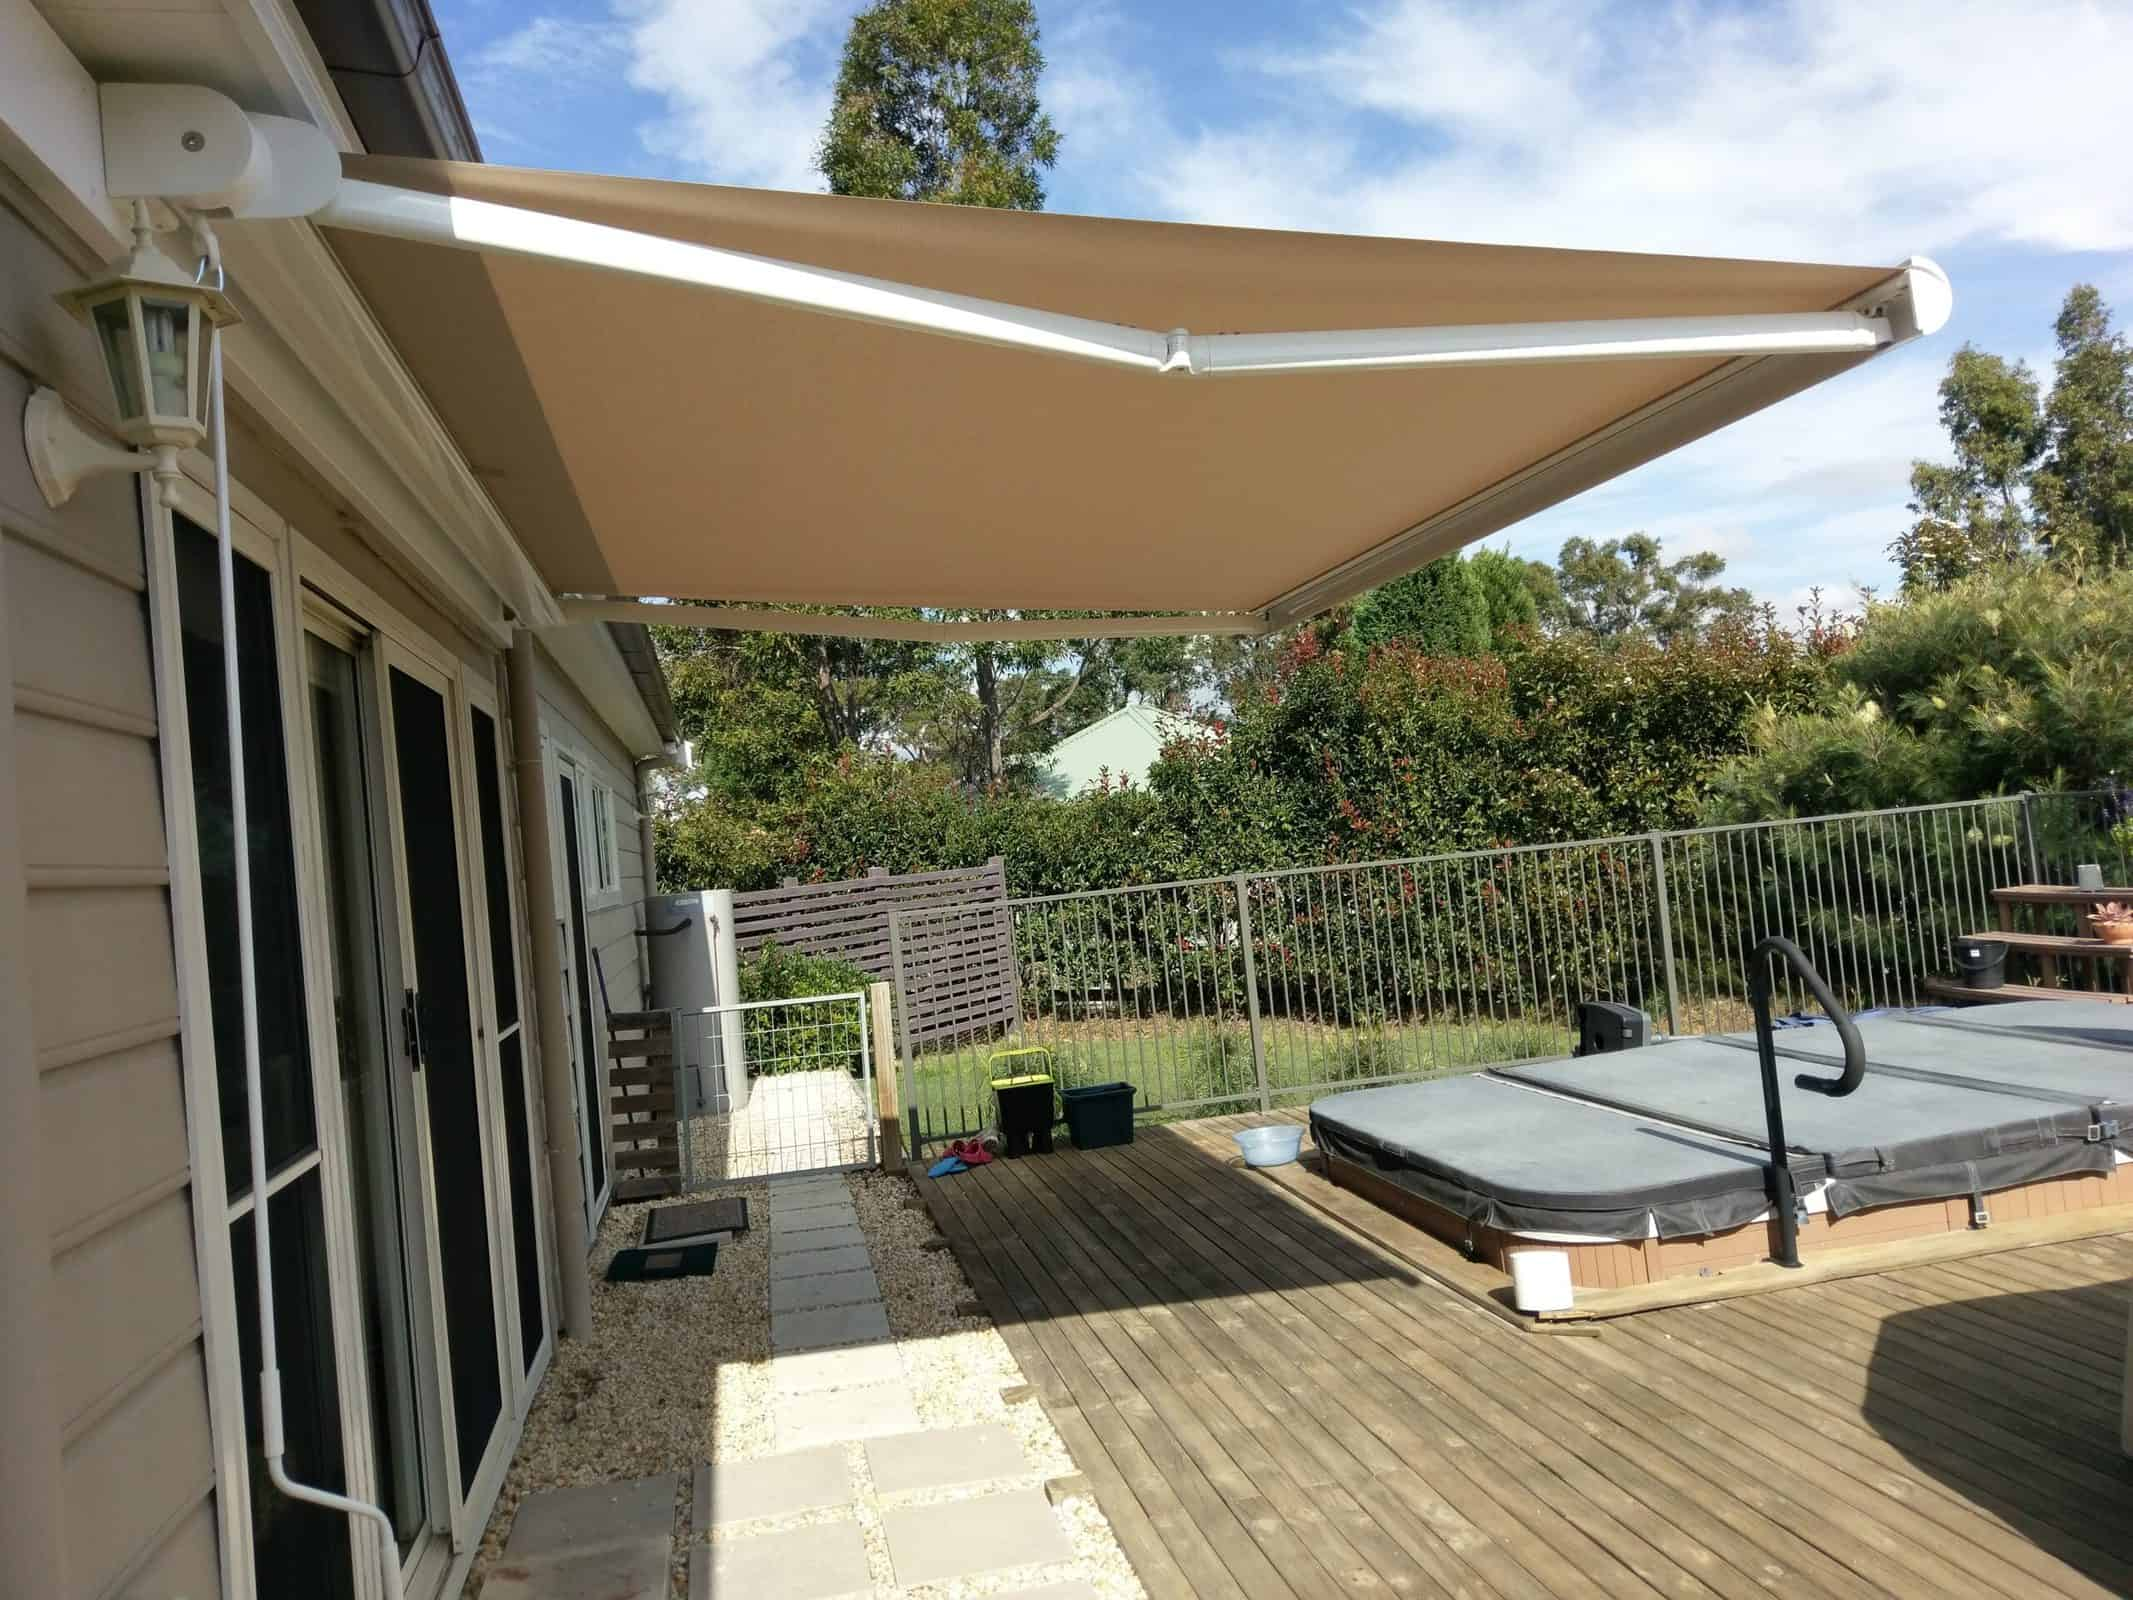 Folding Arm Awnings - Curtains Newcastle - Somerset Curtains & Blinds Newcastle